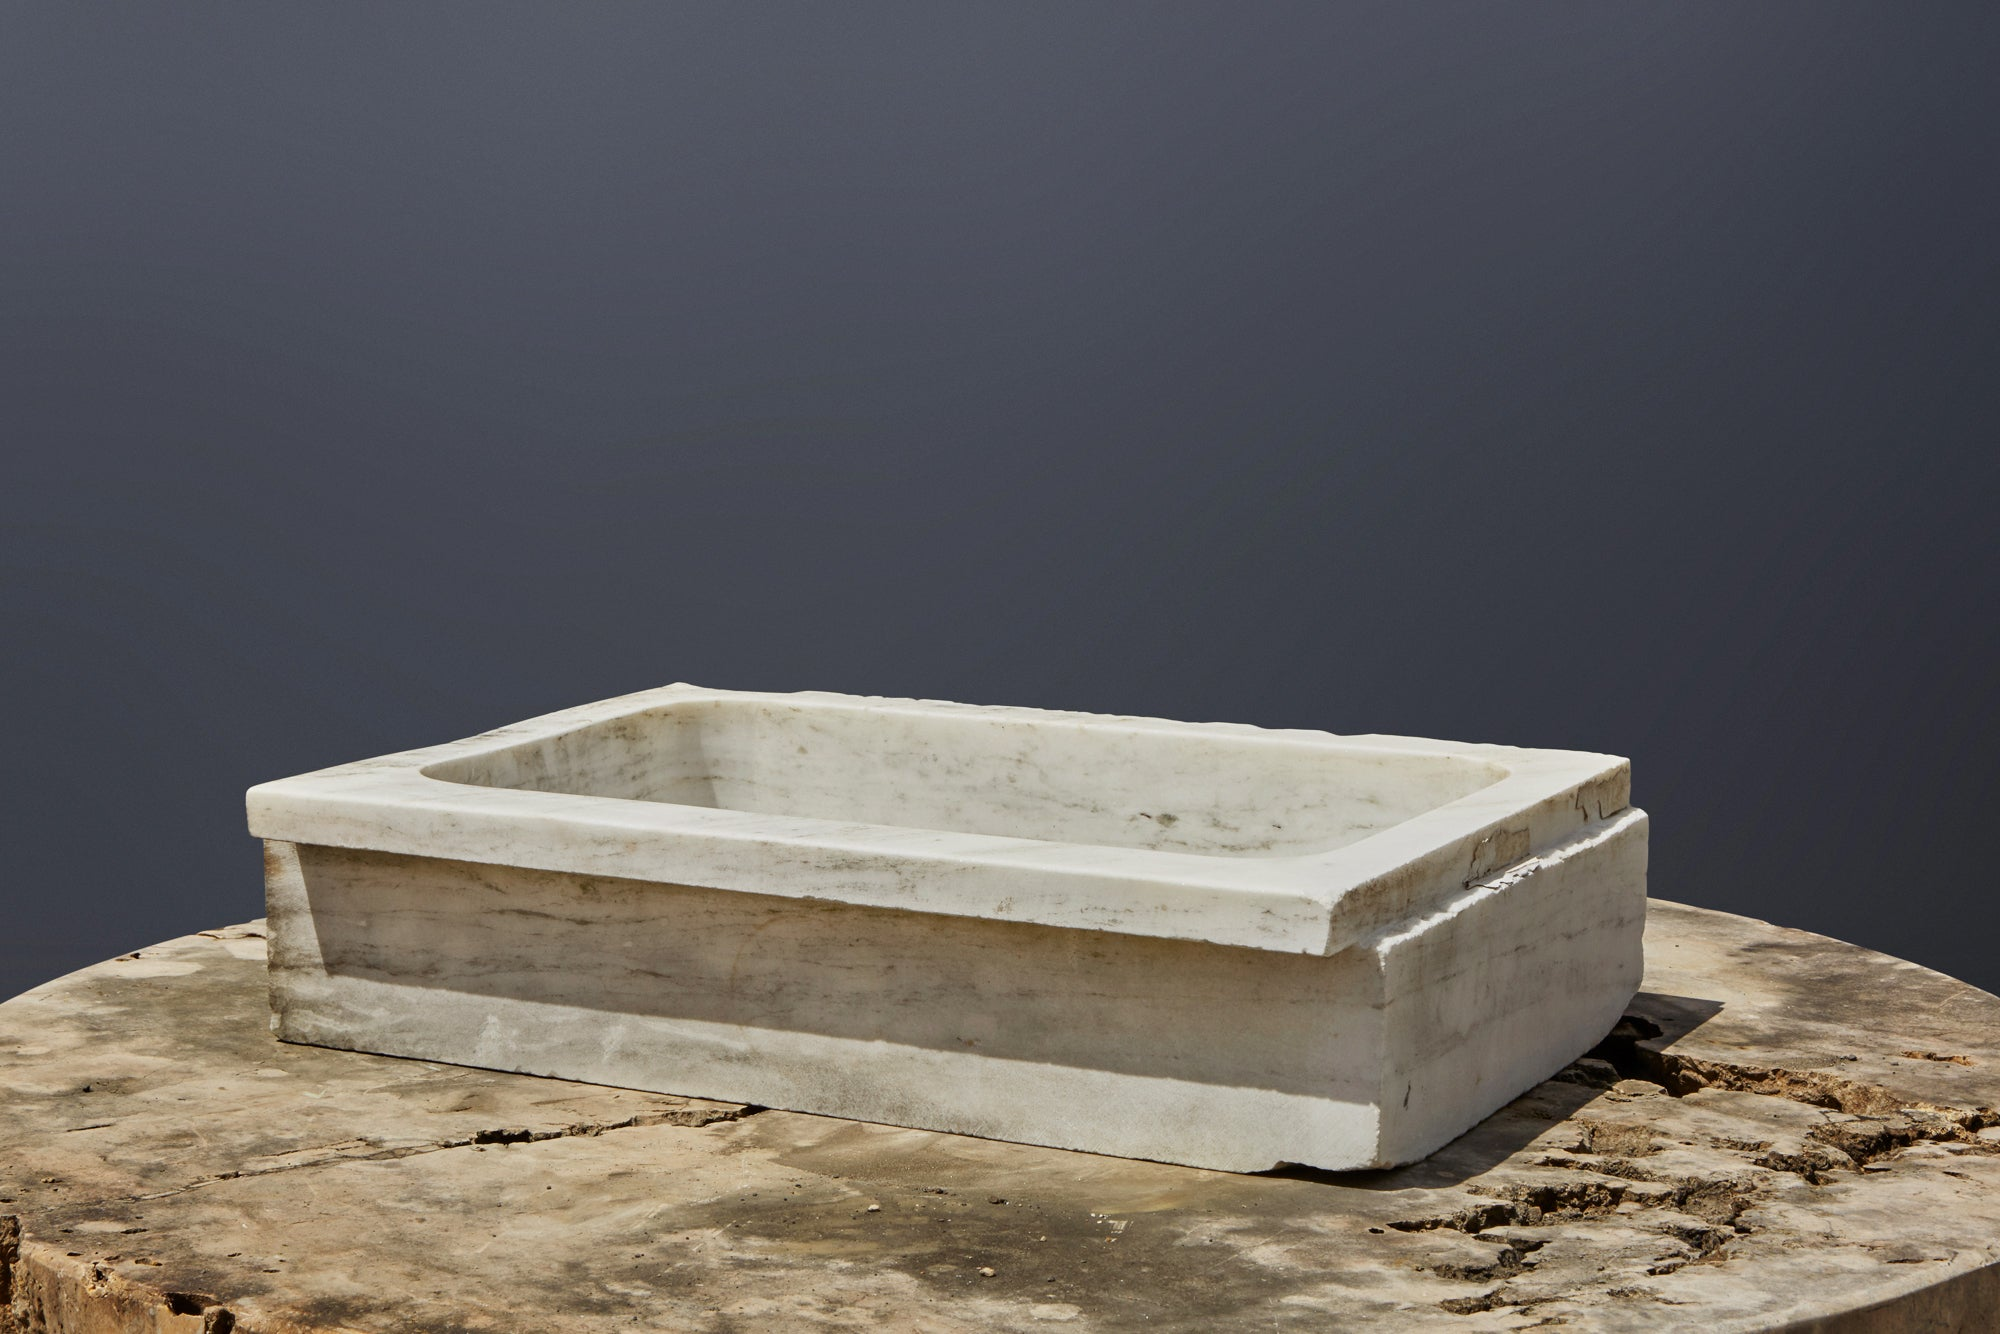 Early White Marble Greek Sink Carved from a Single Block